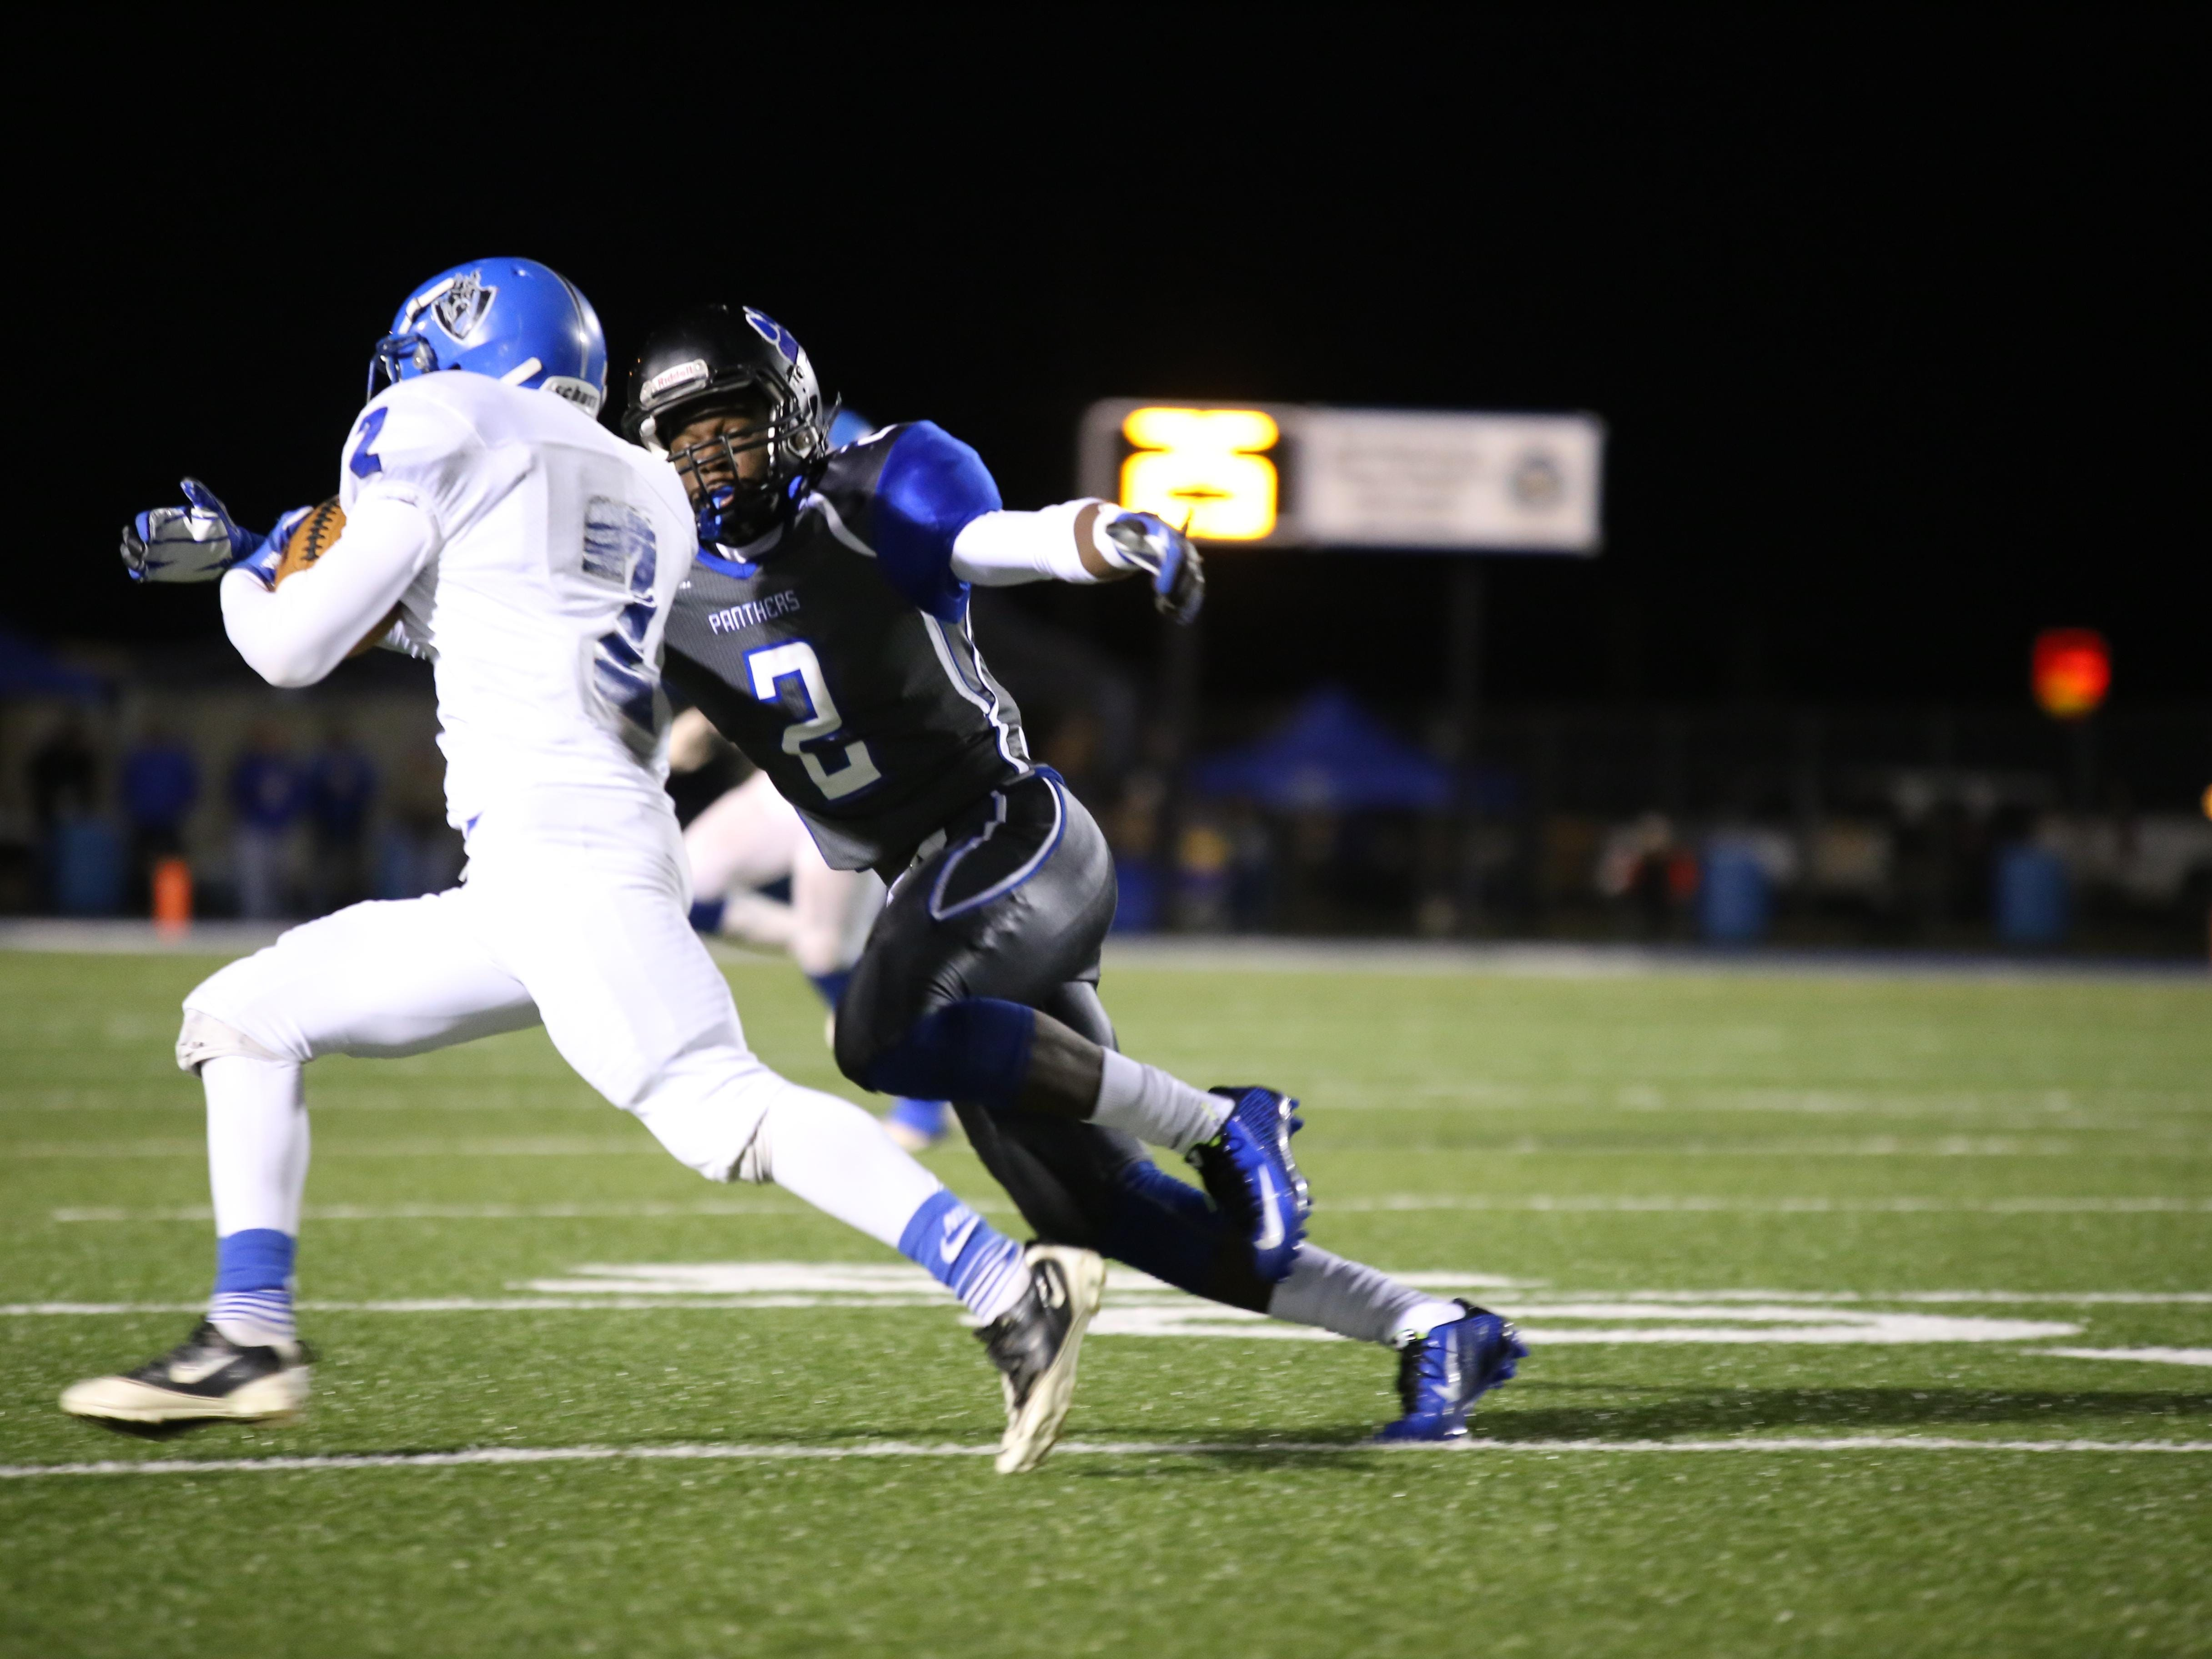 Ruby Chang/The News-Star Sterlington?s CJ Colvin (2) tackles Tyriq Kelly of Northeast during Friday?s game.